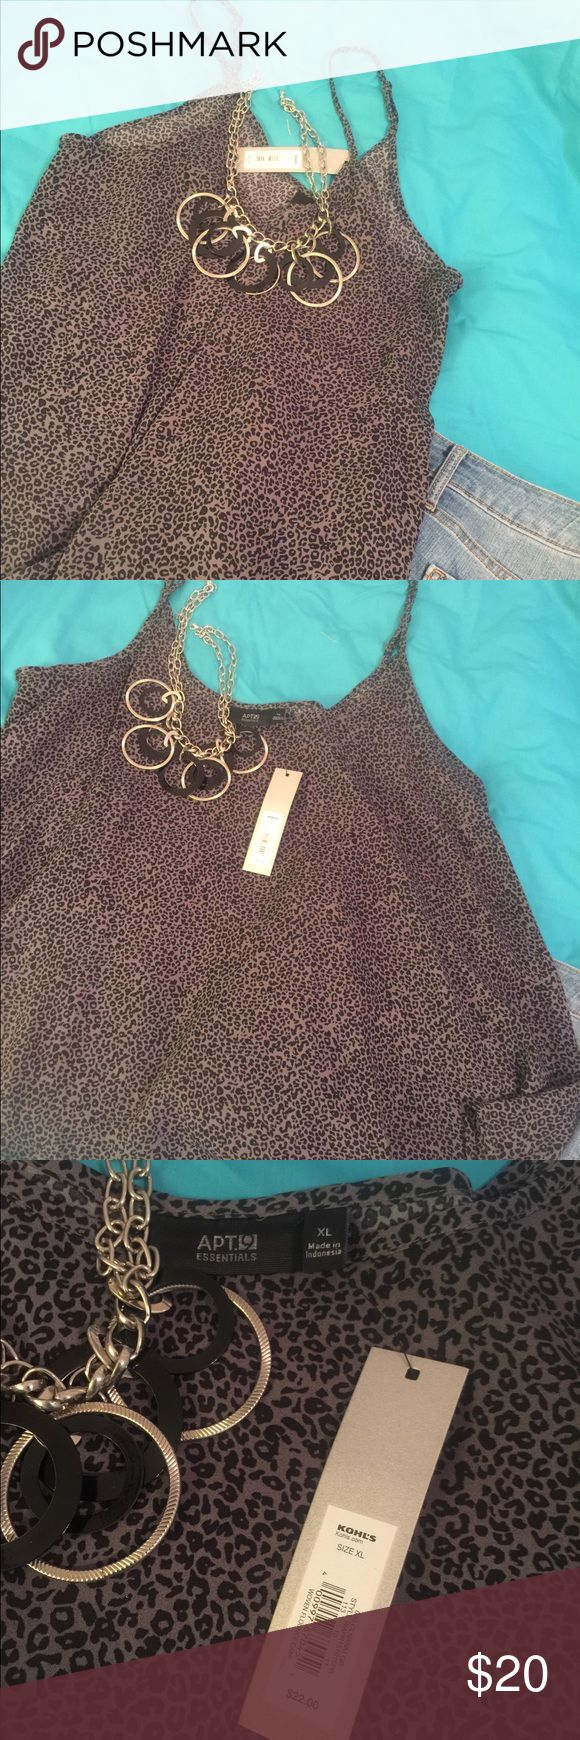 NWT-animal print cami top Black/gray, animal print, NWT, cami with rounded, flowy bottom. This top would be great worn alone or with a cardigan, great with blue, black jeans, or slacks. Make a GREAT complete outfit with accessories from my closet and get a super discount‼️ Apt. 9 Tops